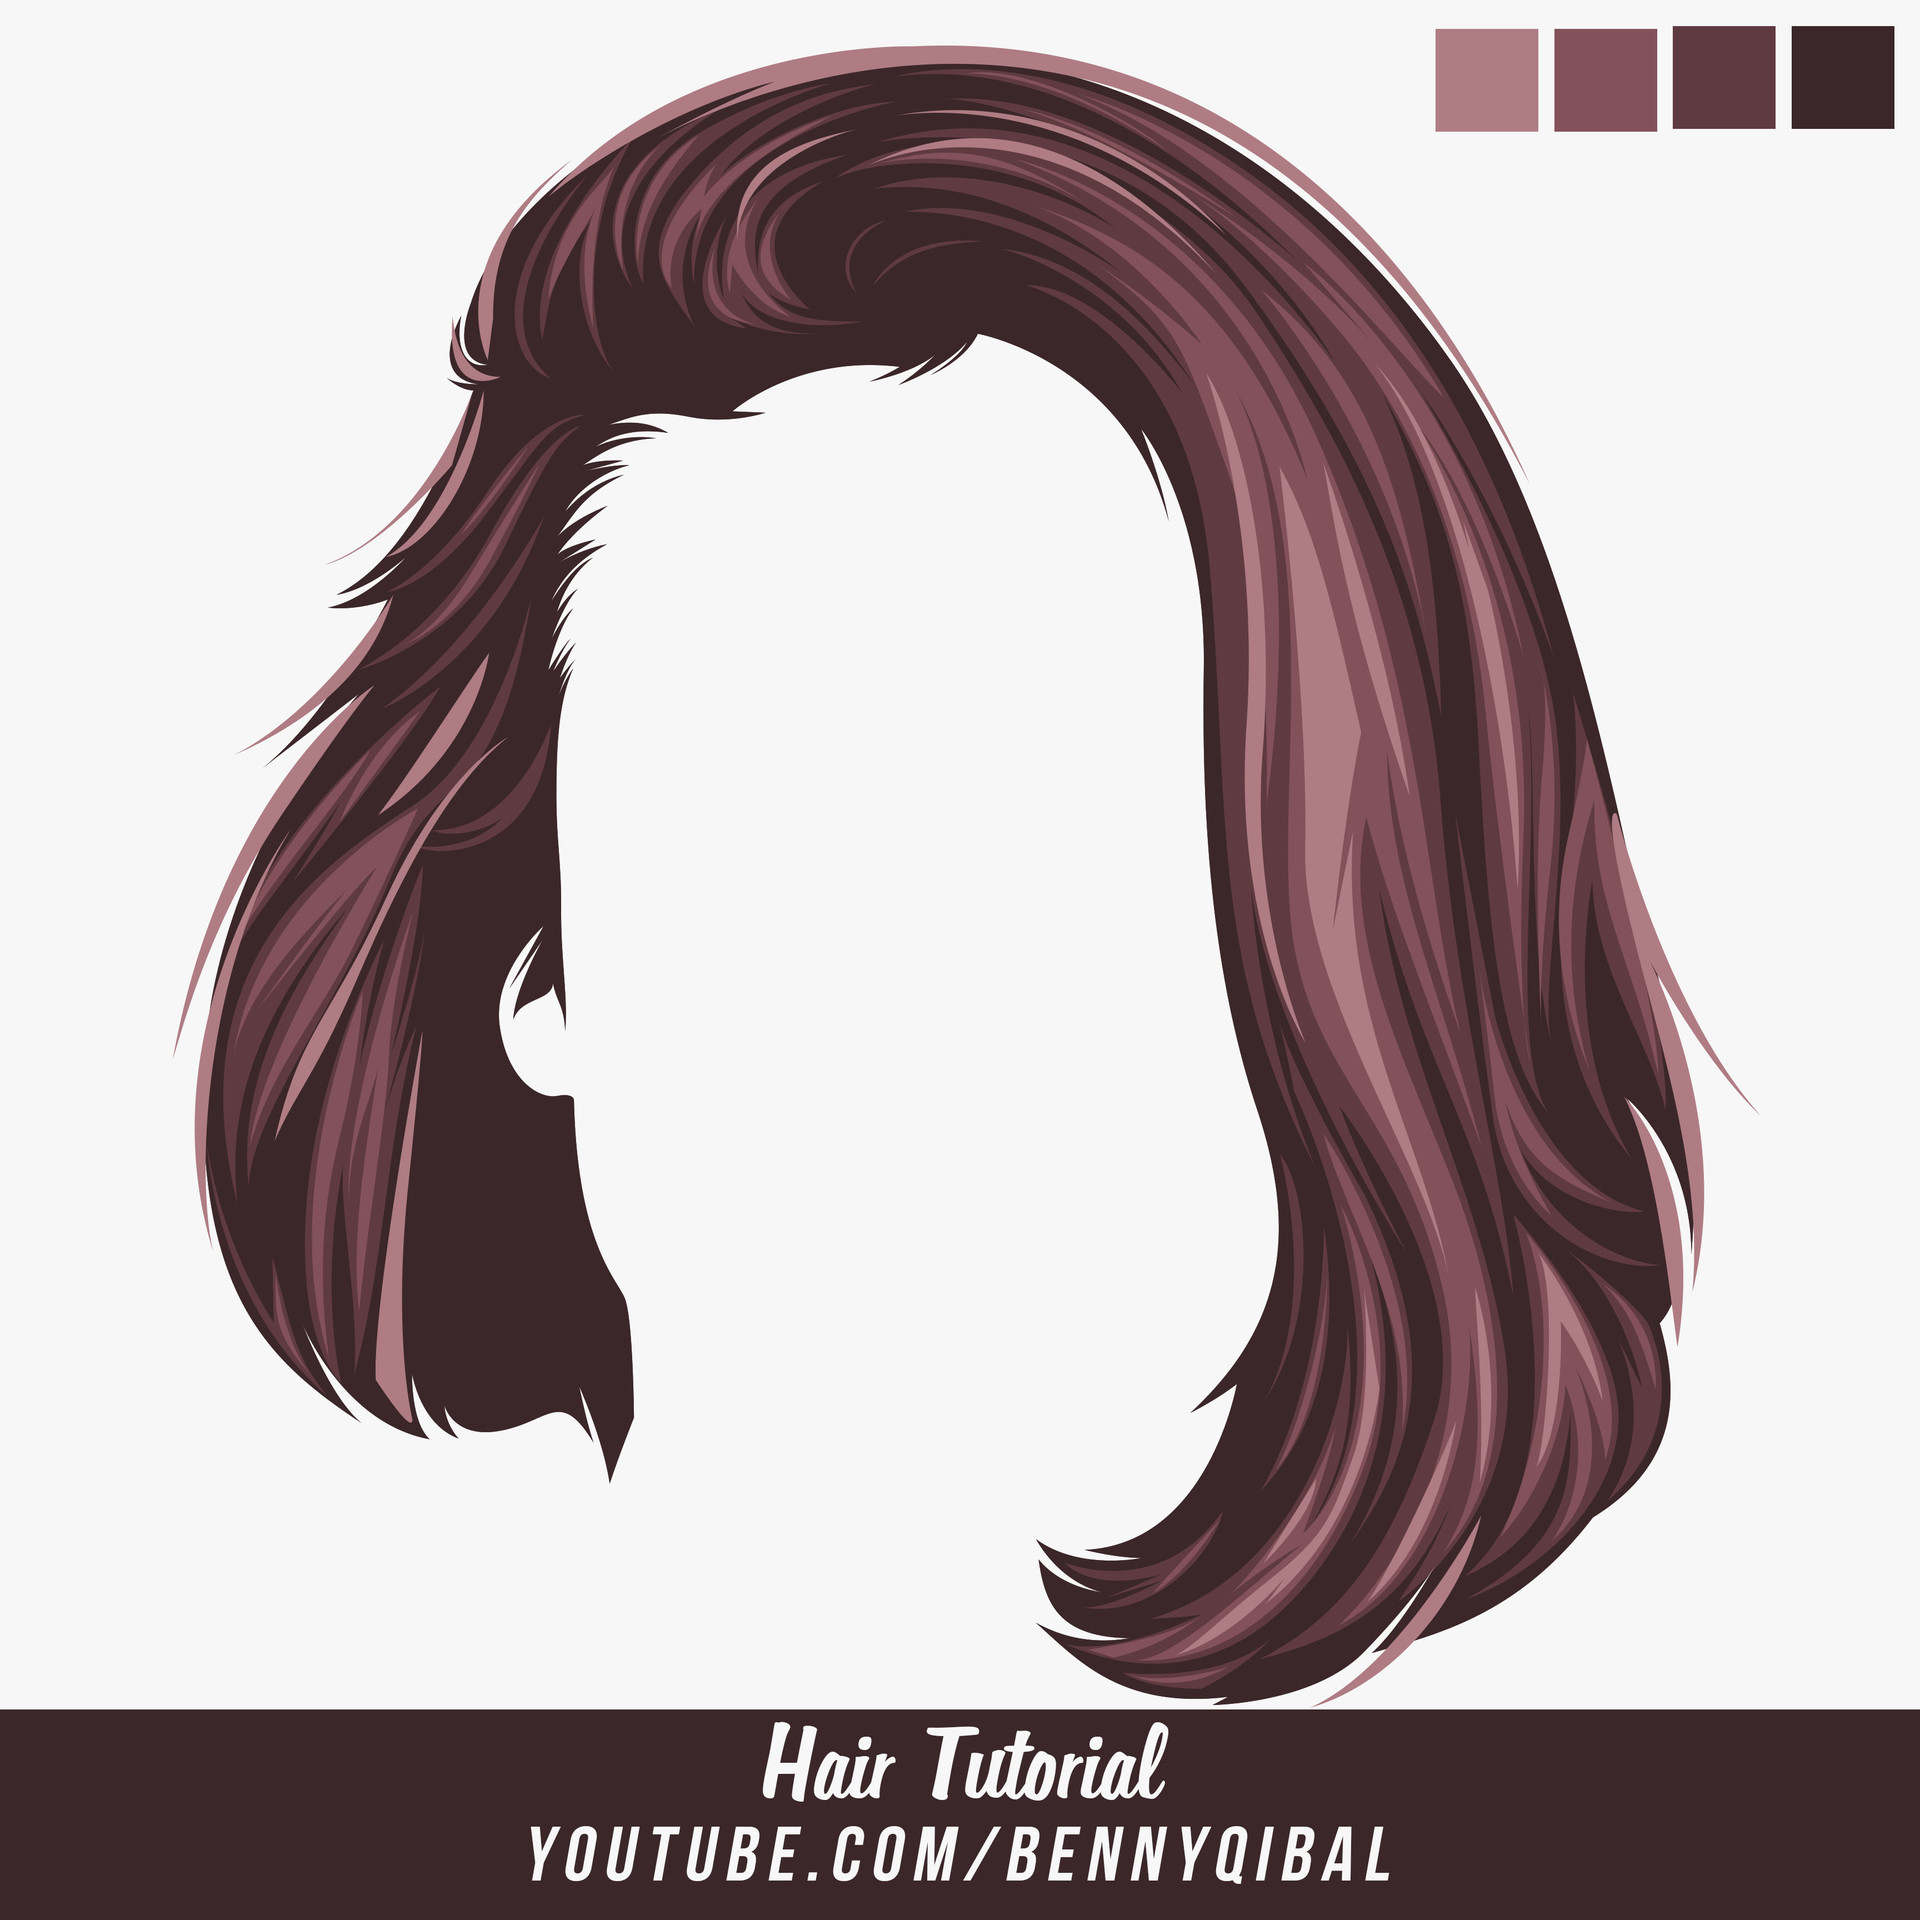 ArtStation - Vector Hair Photoshop Tutorial, Benny Qibal